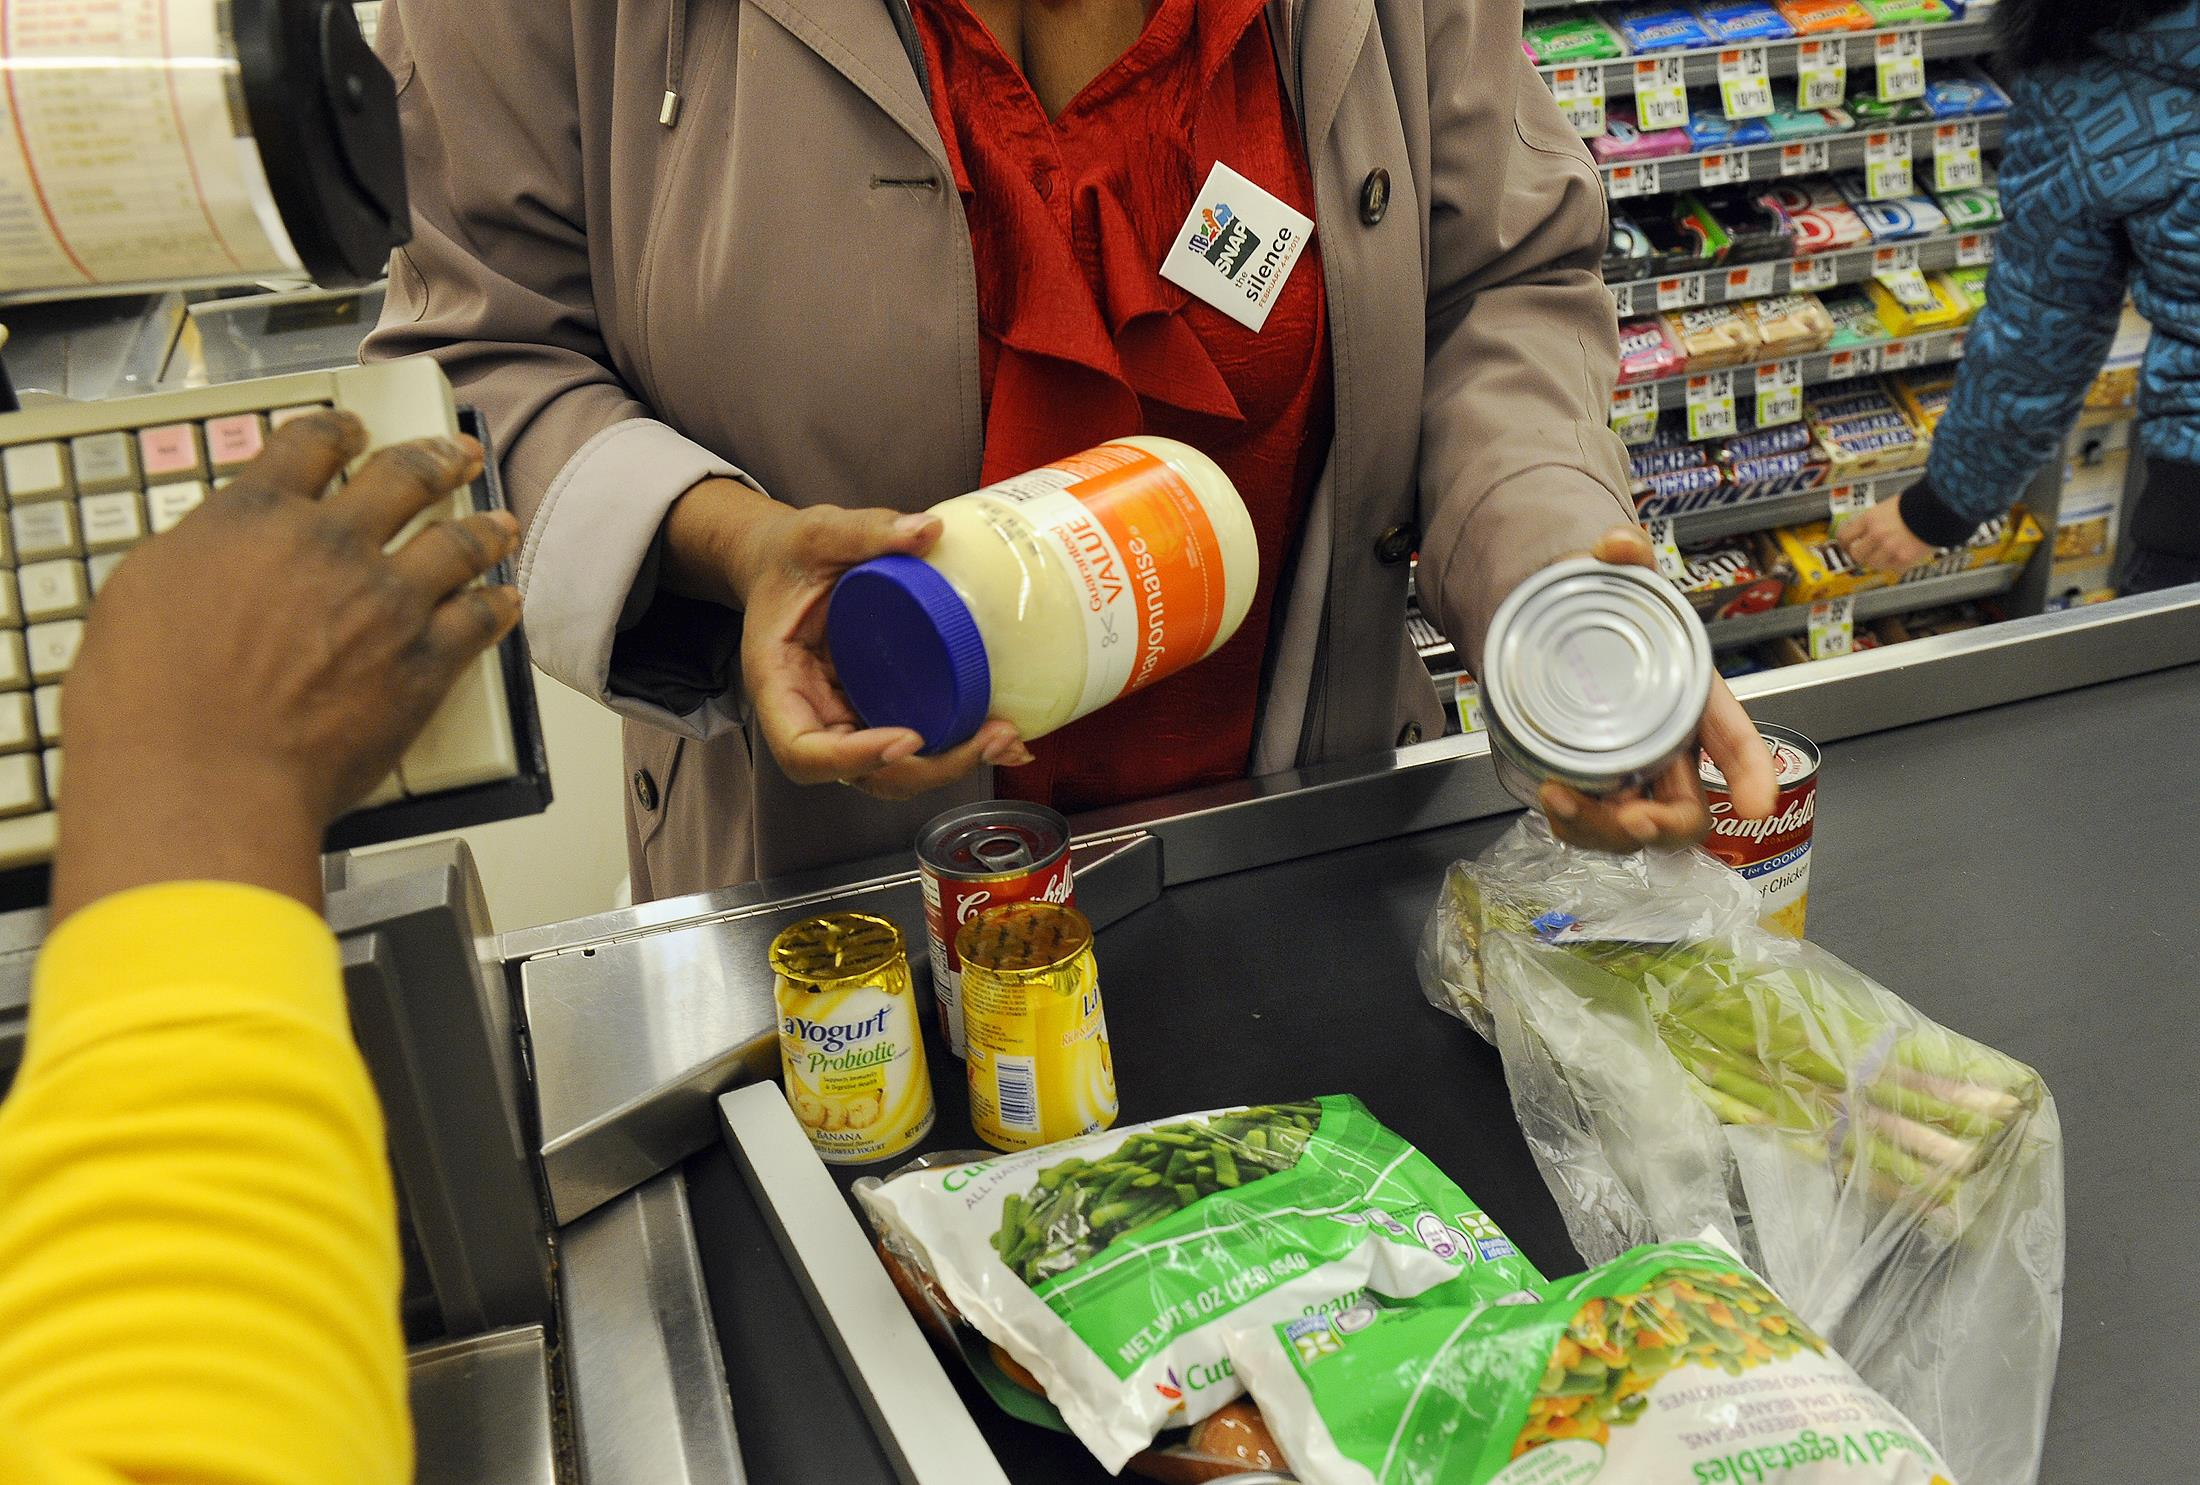 Image: Shopping trip to buy food within limits of SNAP budget